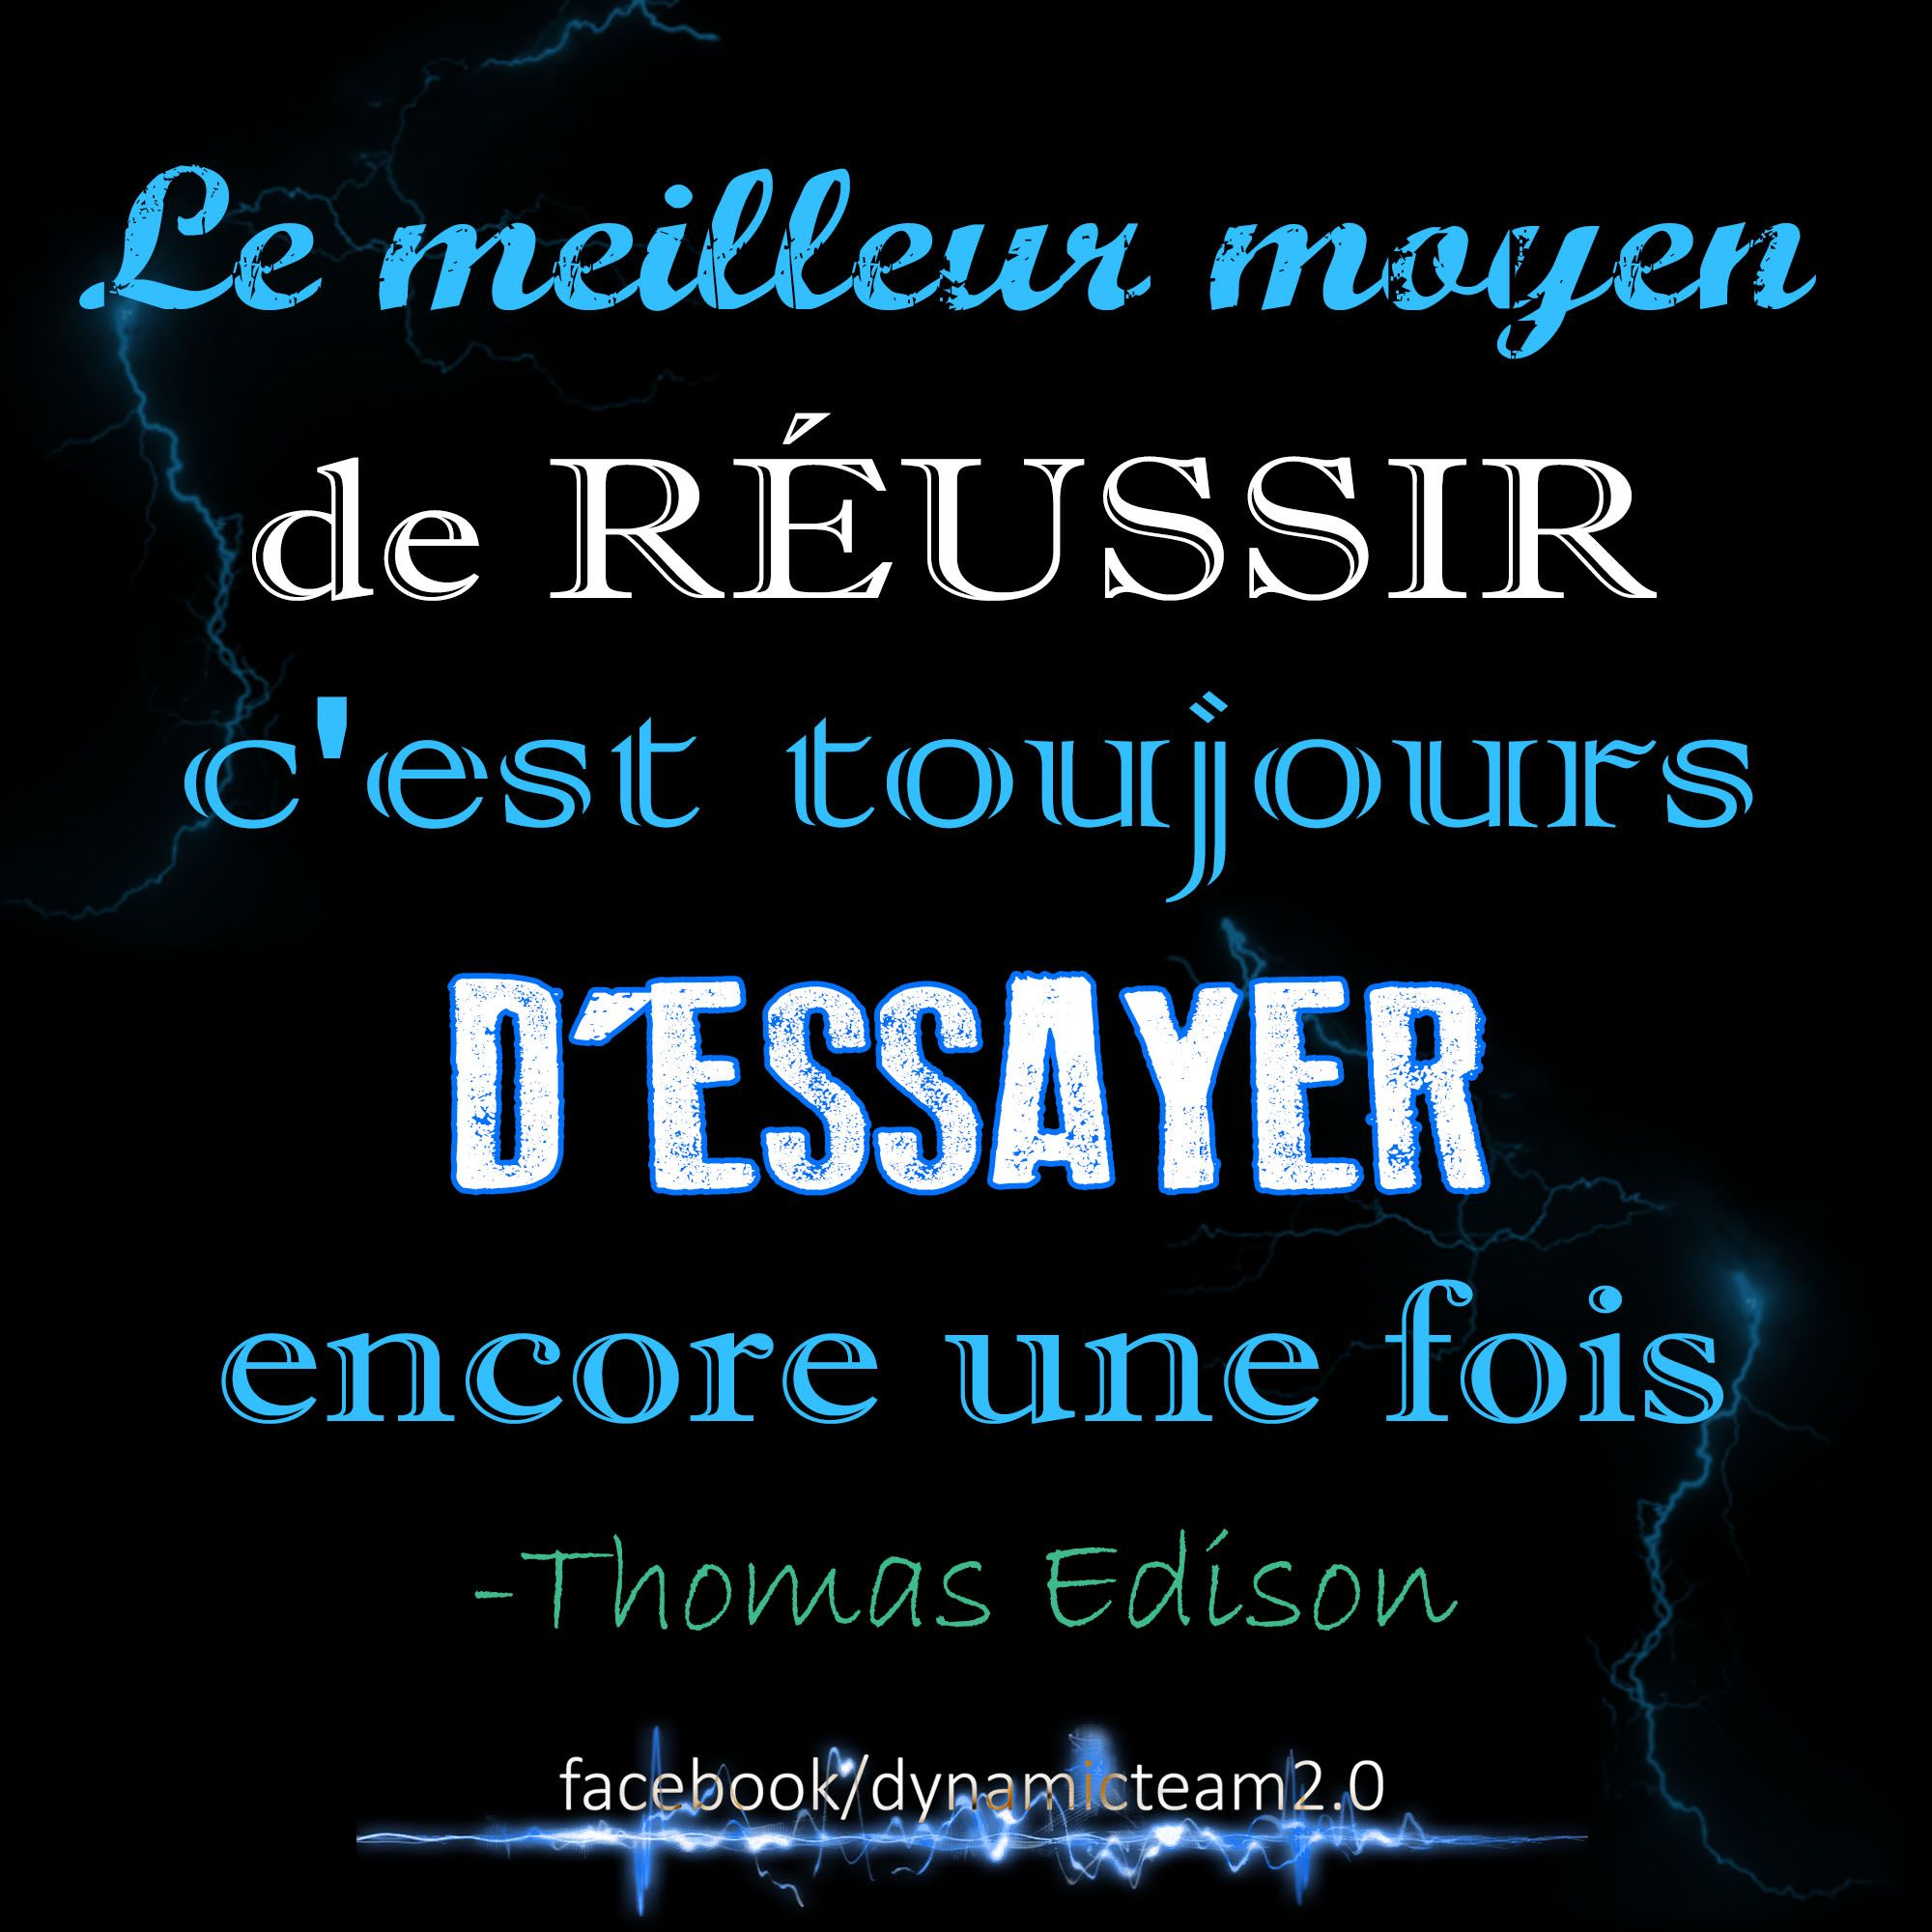 003 Essayer Essay Impressive De Or A Conjugation Imperative Ne Pas Rire Full